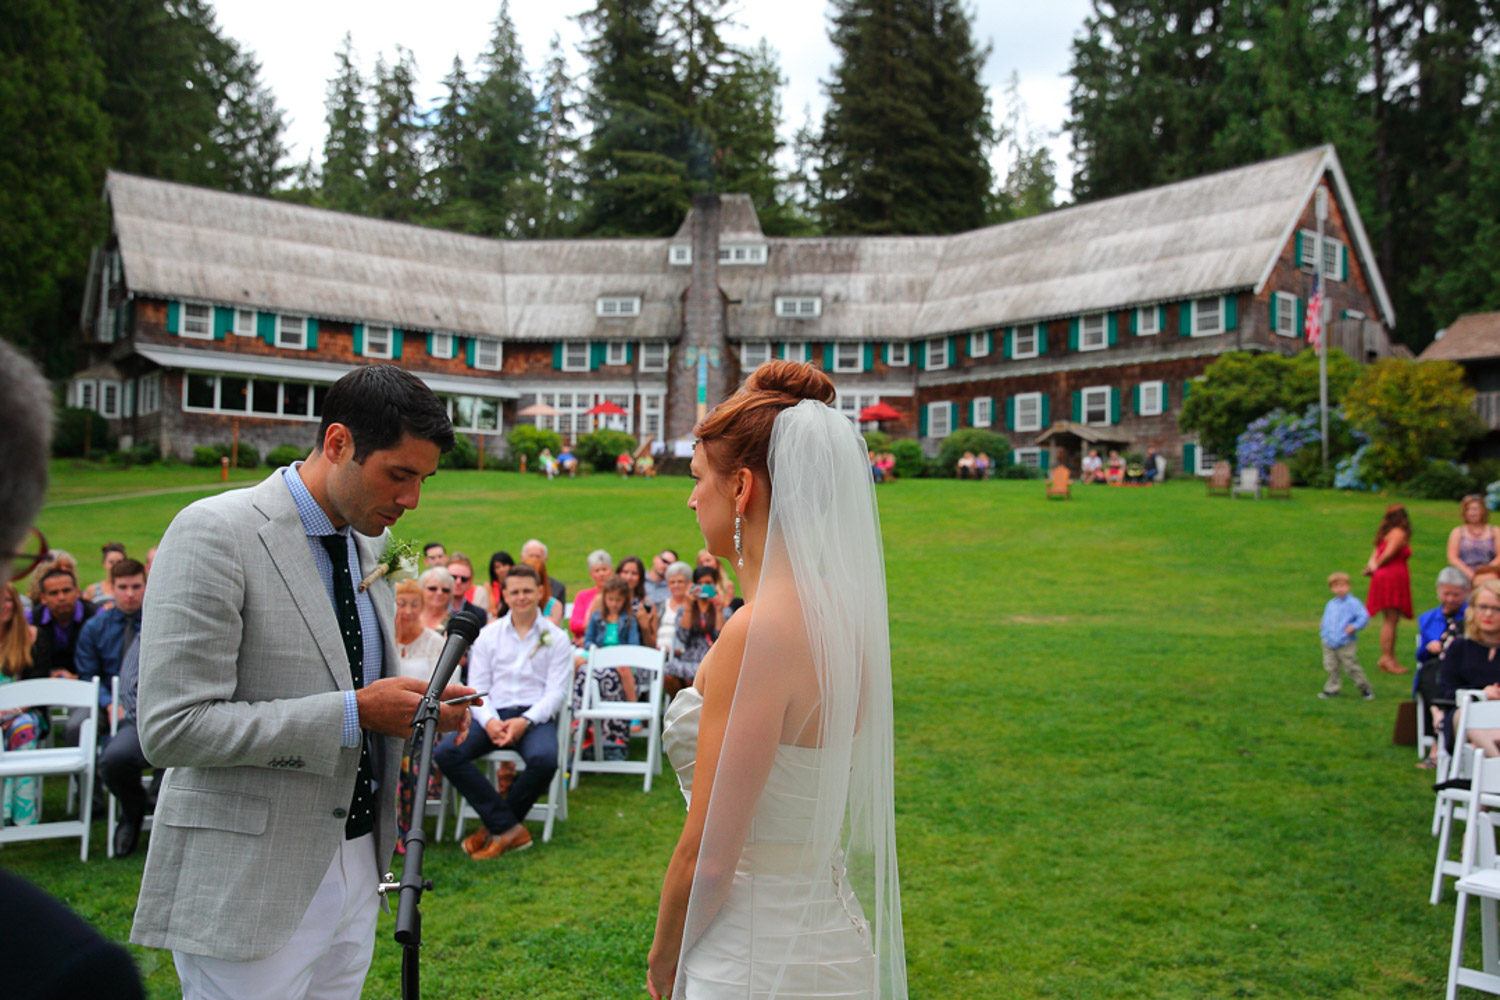 Wedding Photos Lake Quinault Lodge Washington34.jpg